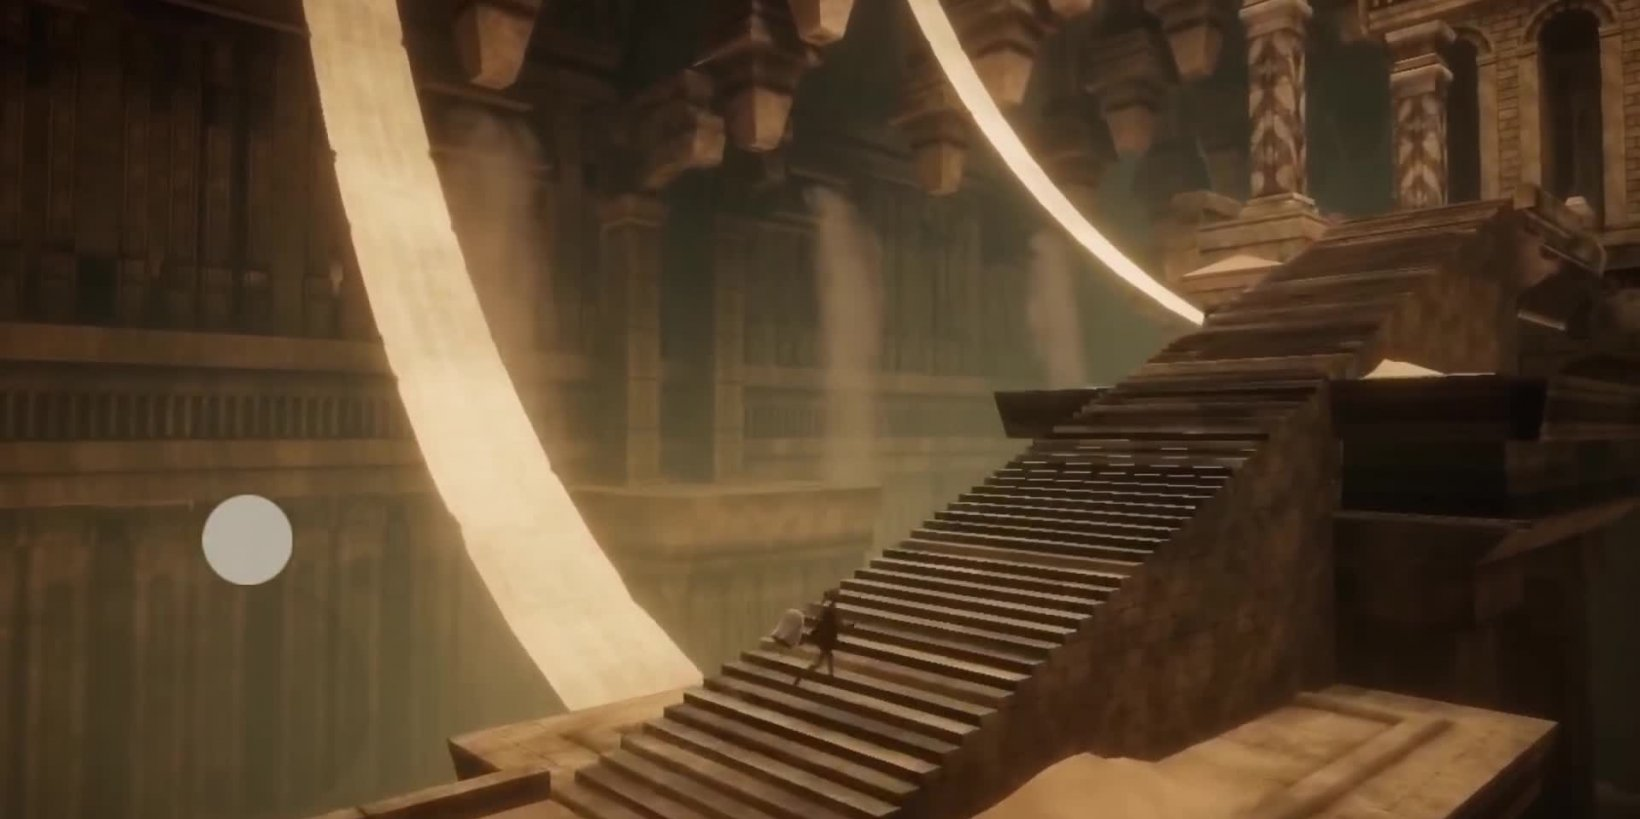 Nier Reincarnation gets its first official gameplay trailer